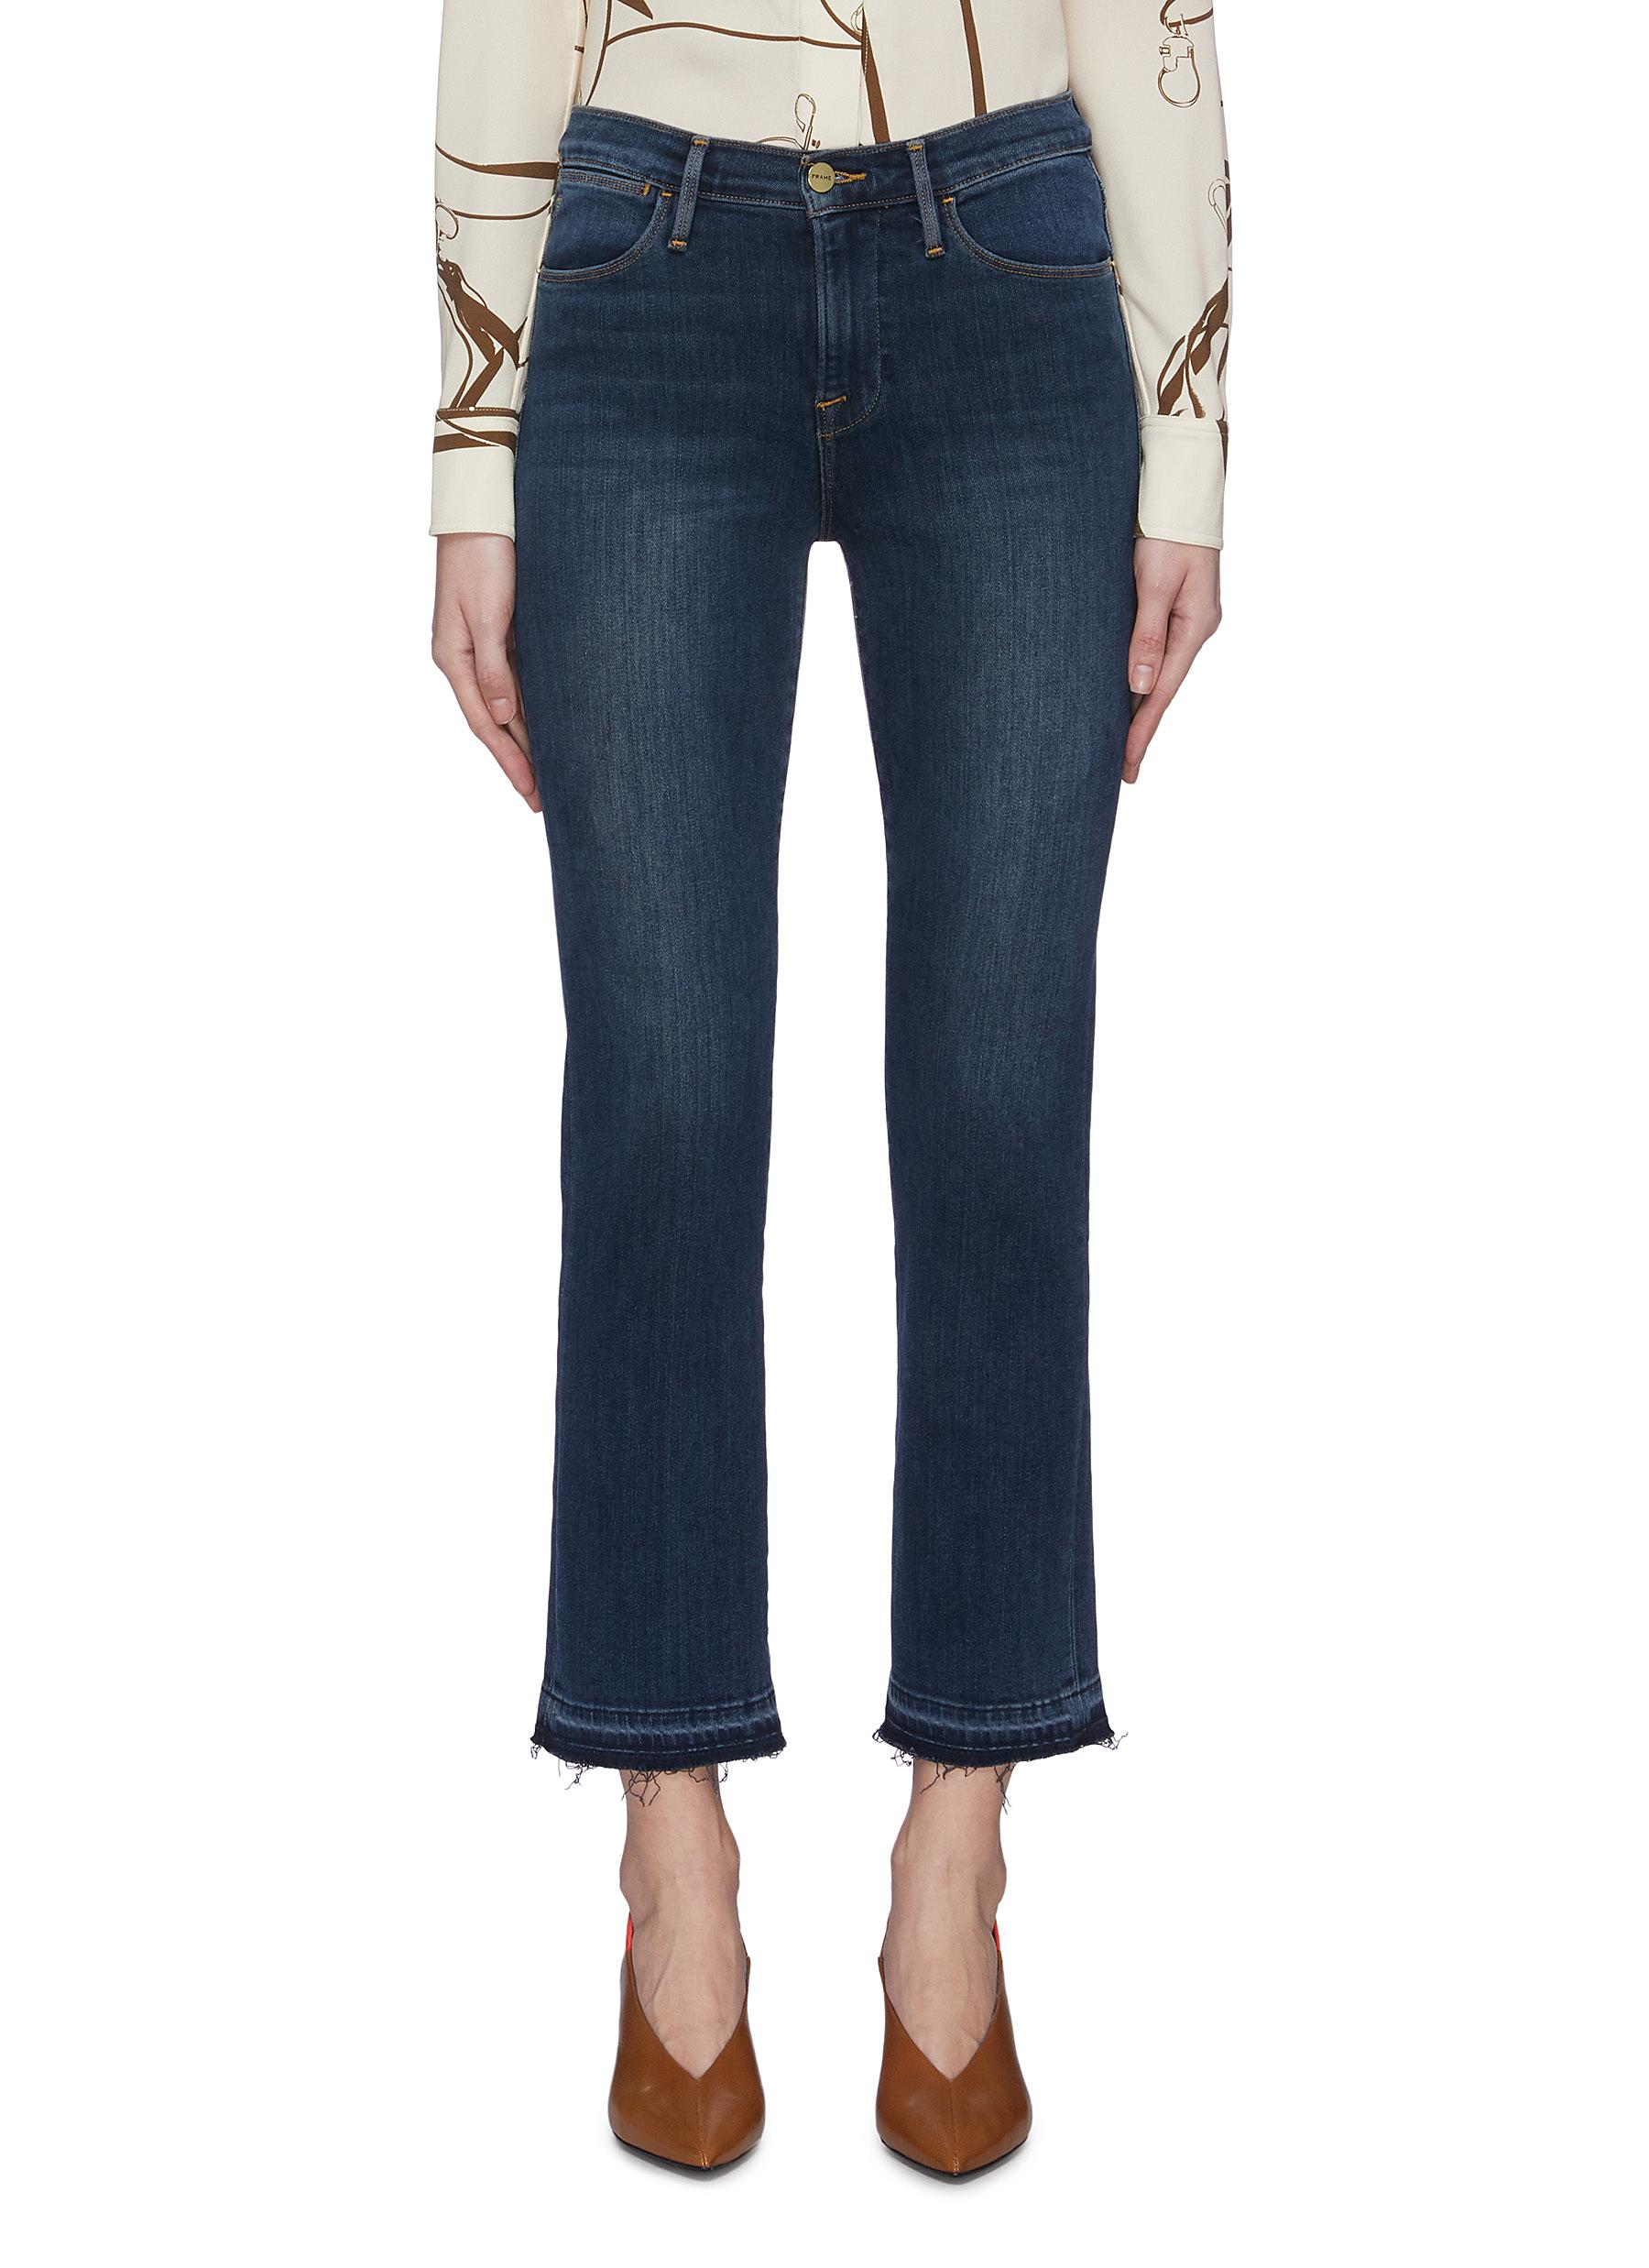 Buy Frame Denim Jeans 'Le High Straight' released raw hem jeans